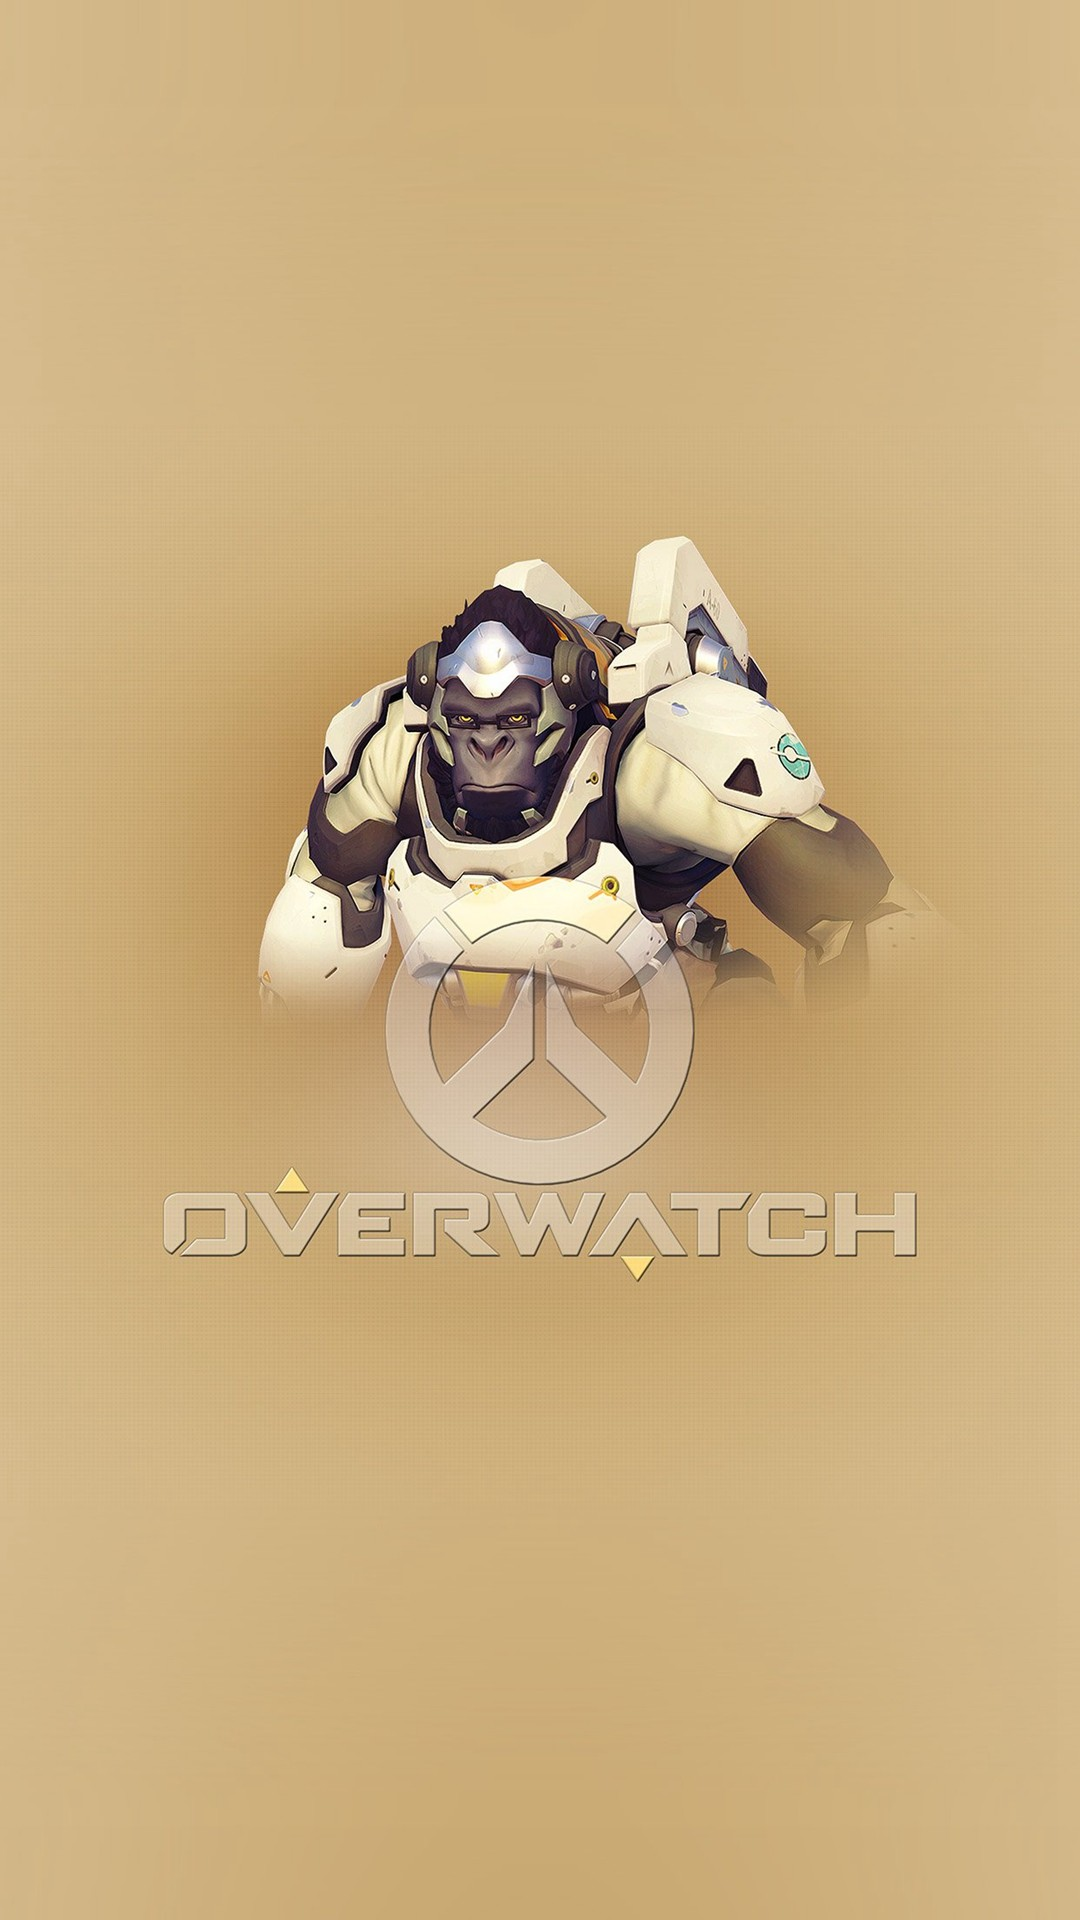 1080x1920 Overwatch Winston Cute Game Art Illustration #iPhone #6 #plus #wallpaper